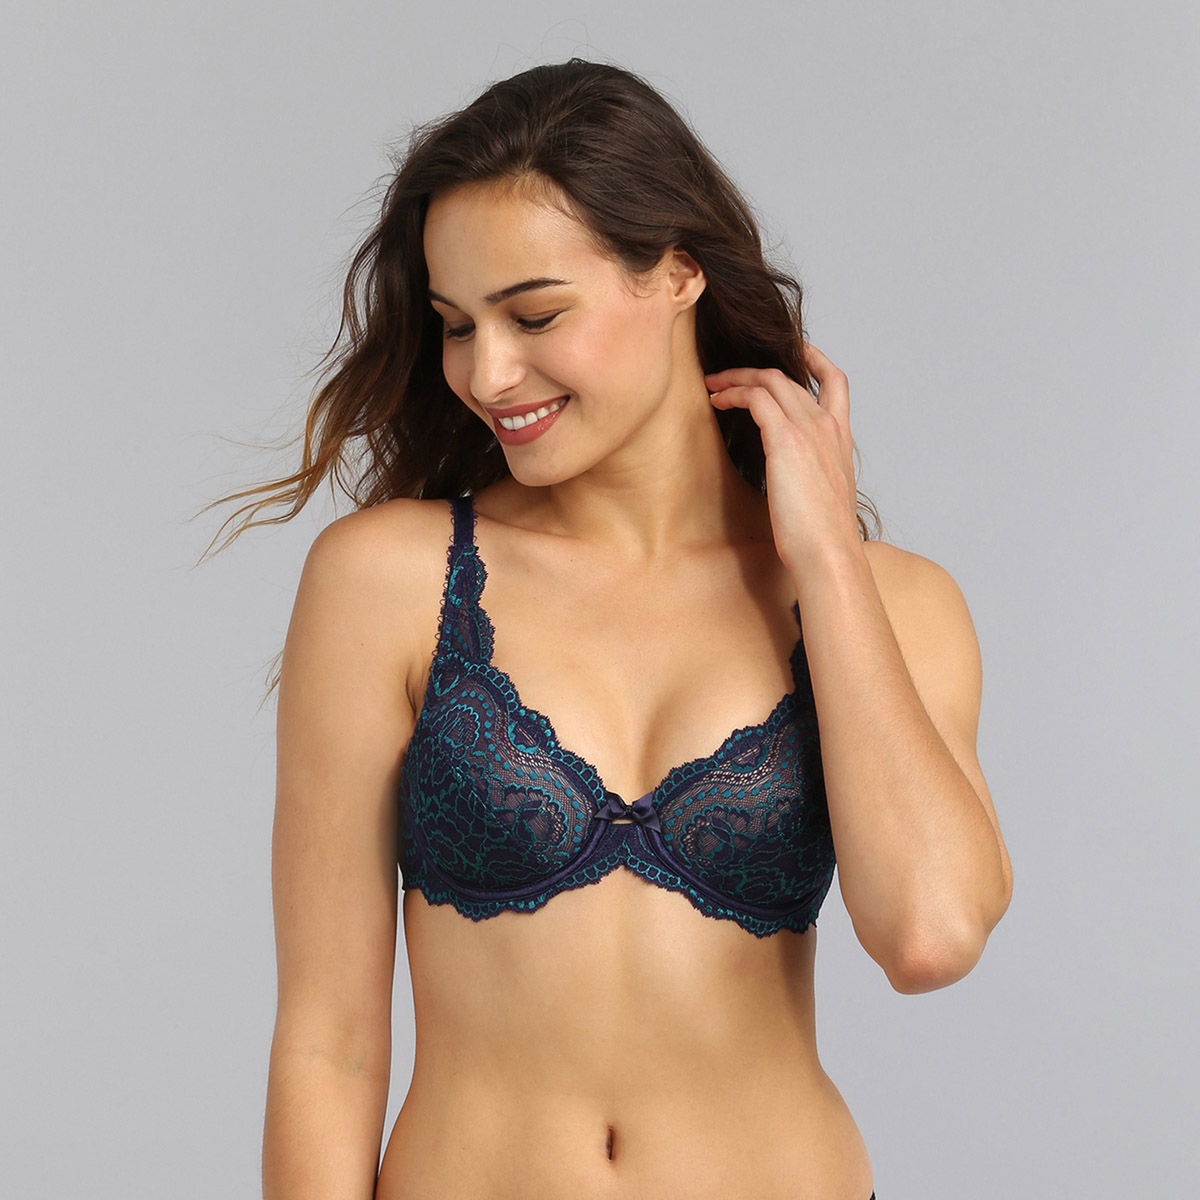 Underwired bra in navy Flower Elegance, , PLAYTEX